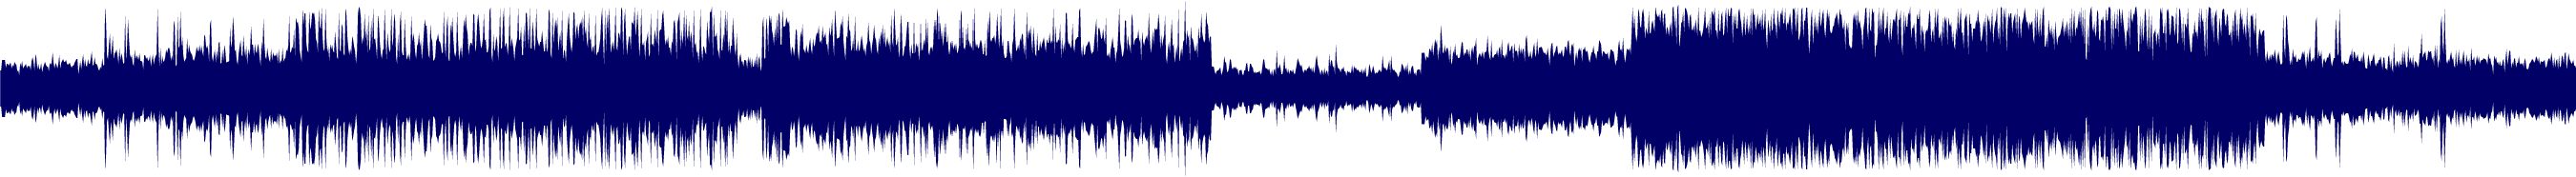 waveform of track #73398